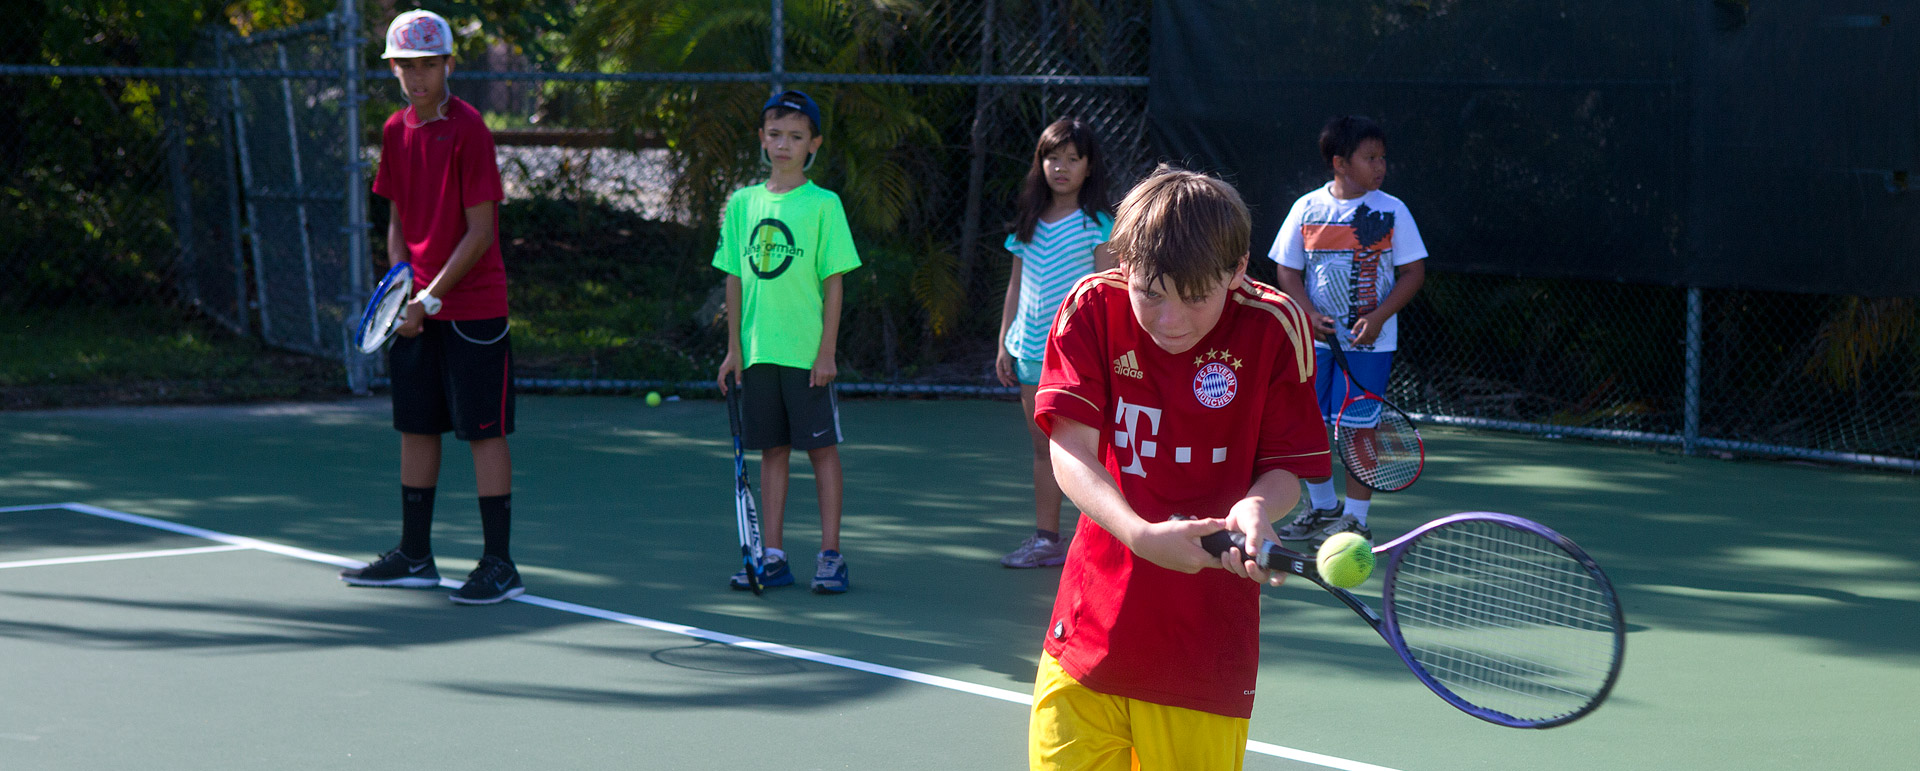 DCSF scholarship recipients having fun at Tennis Camp